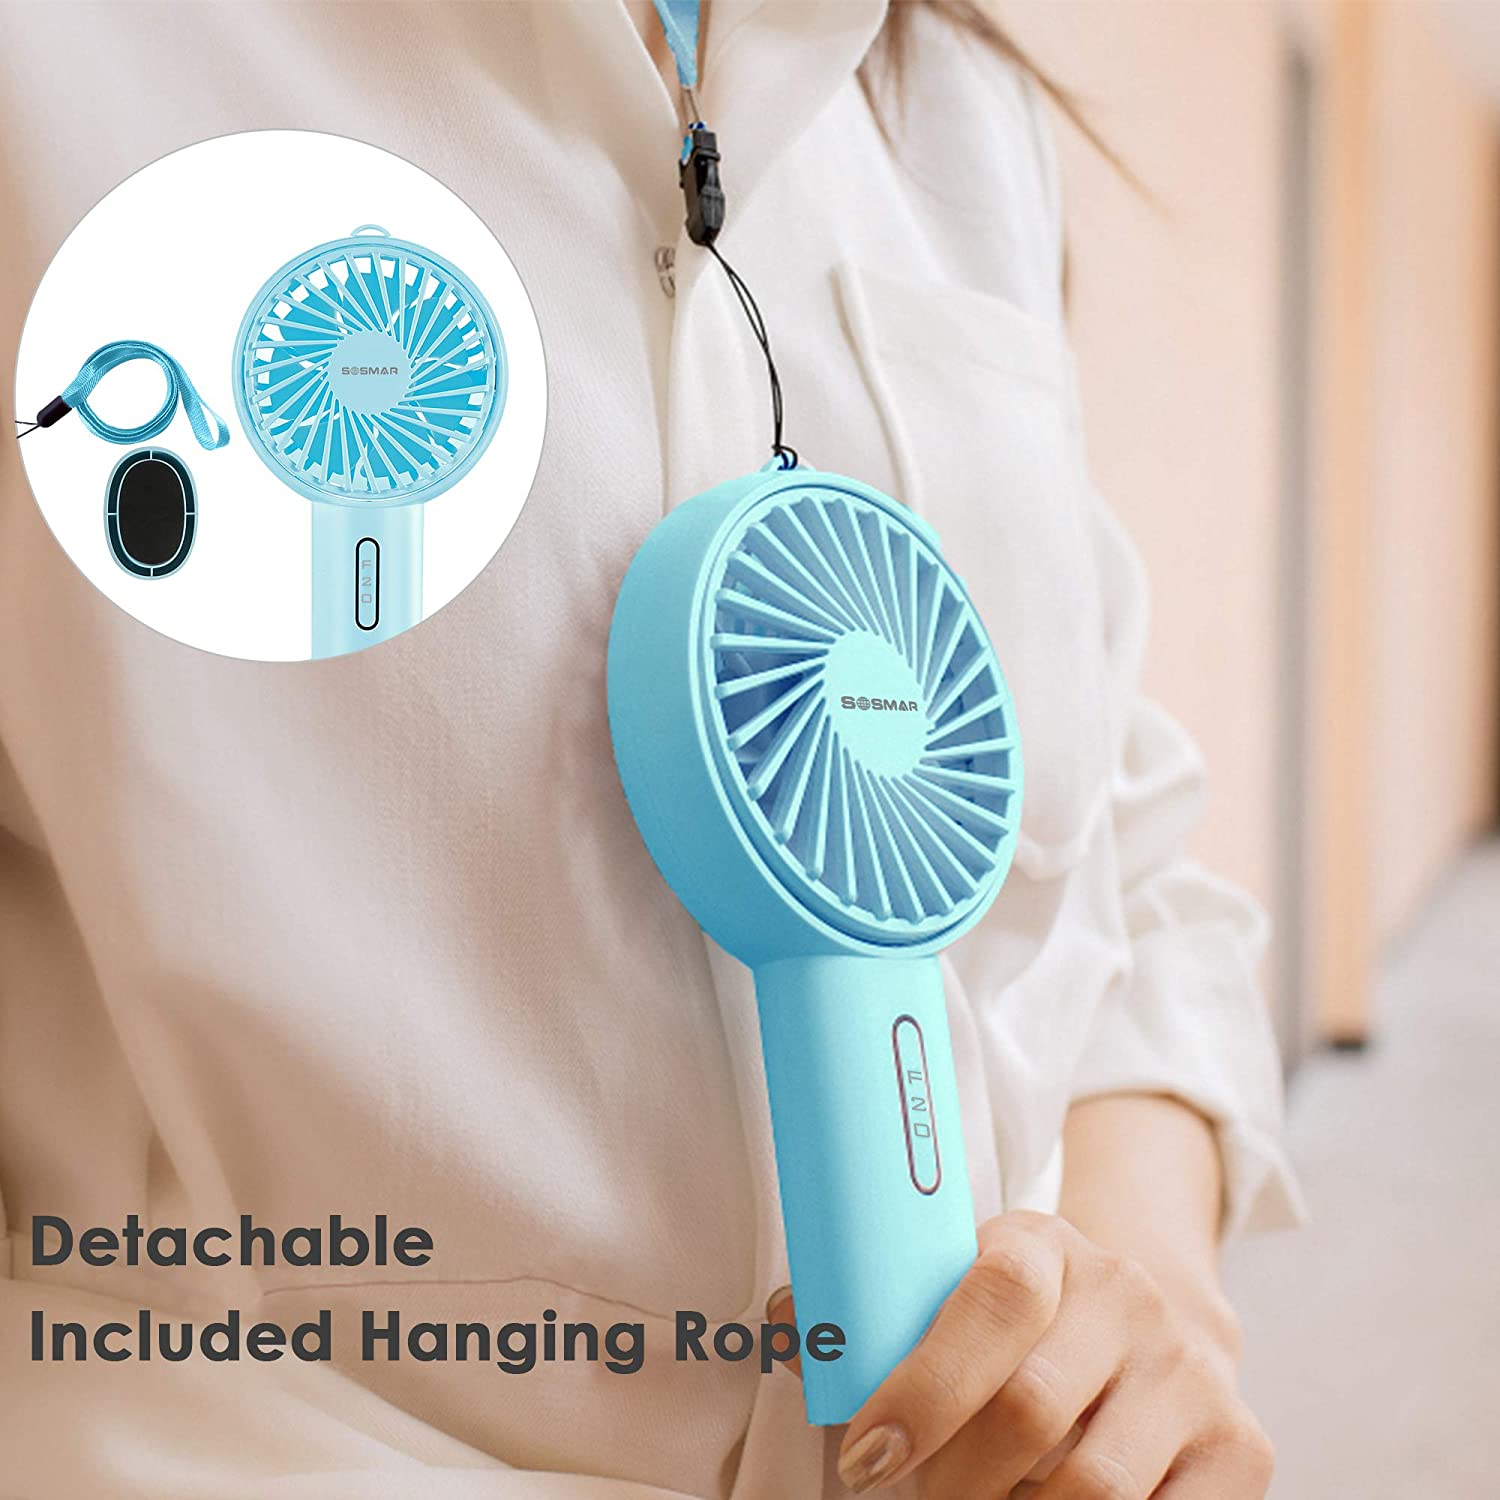 SOSMAR Mini Handheld Fan, Portable Electric Fan, USB Rechargeable Battery, Support Up and Down Adjustment of 30 Degrees, Quiet, 3 Level Speed for Outdoor, Hiking, Office Green